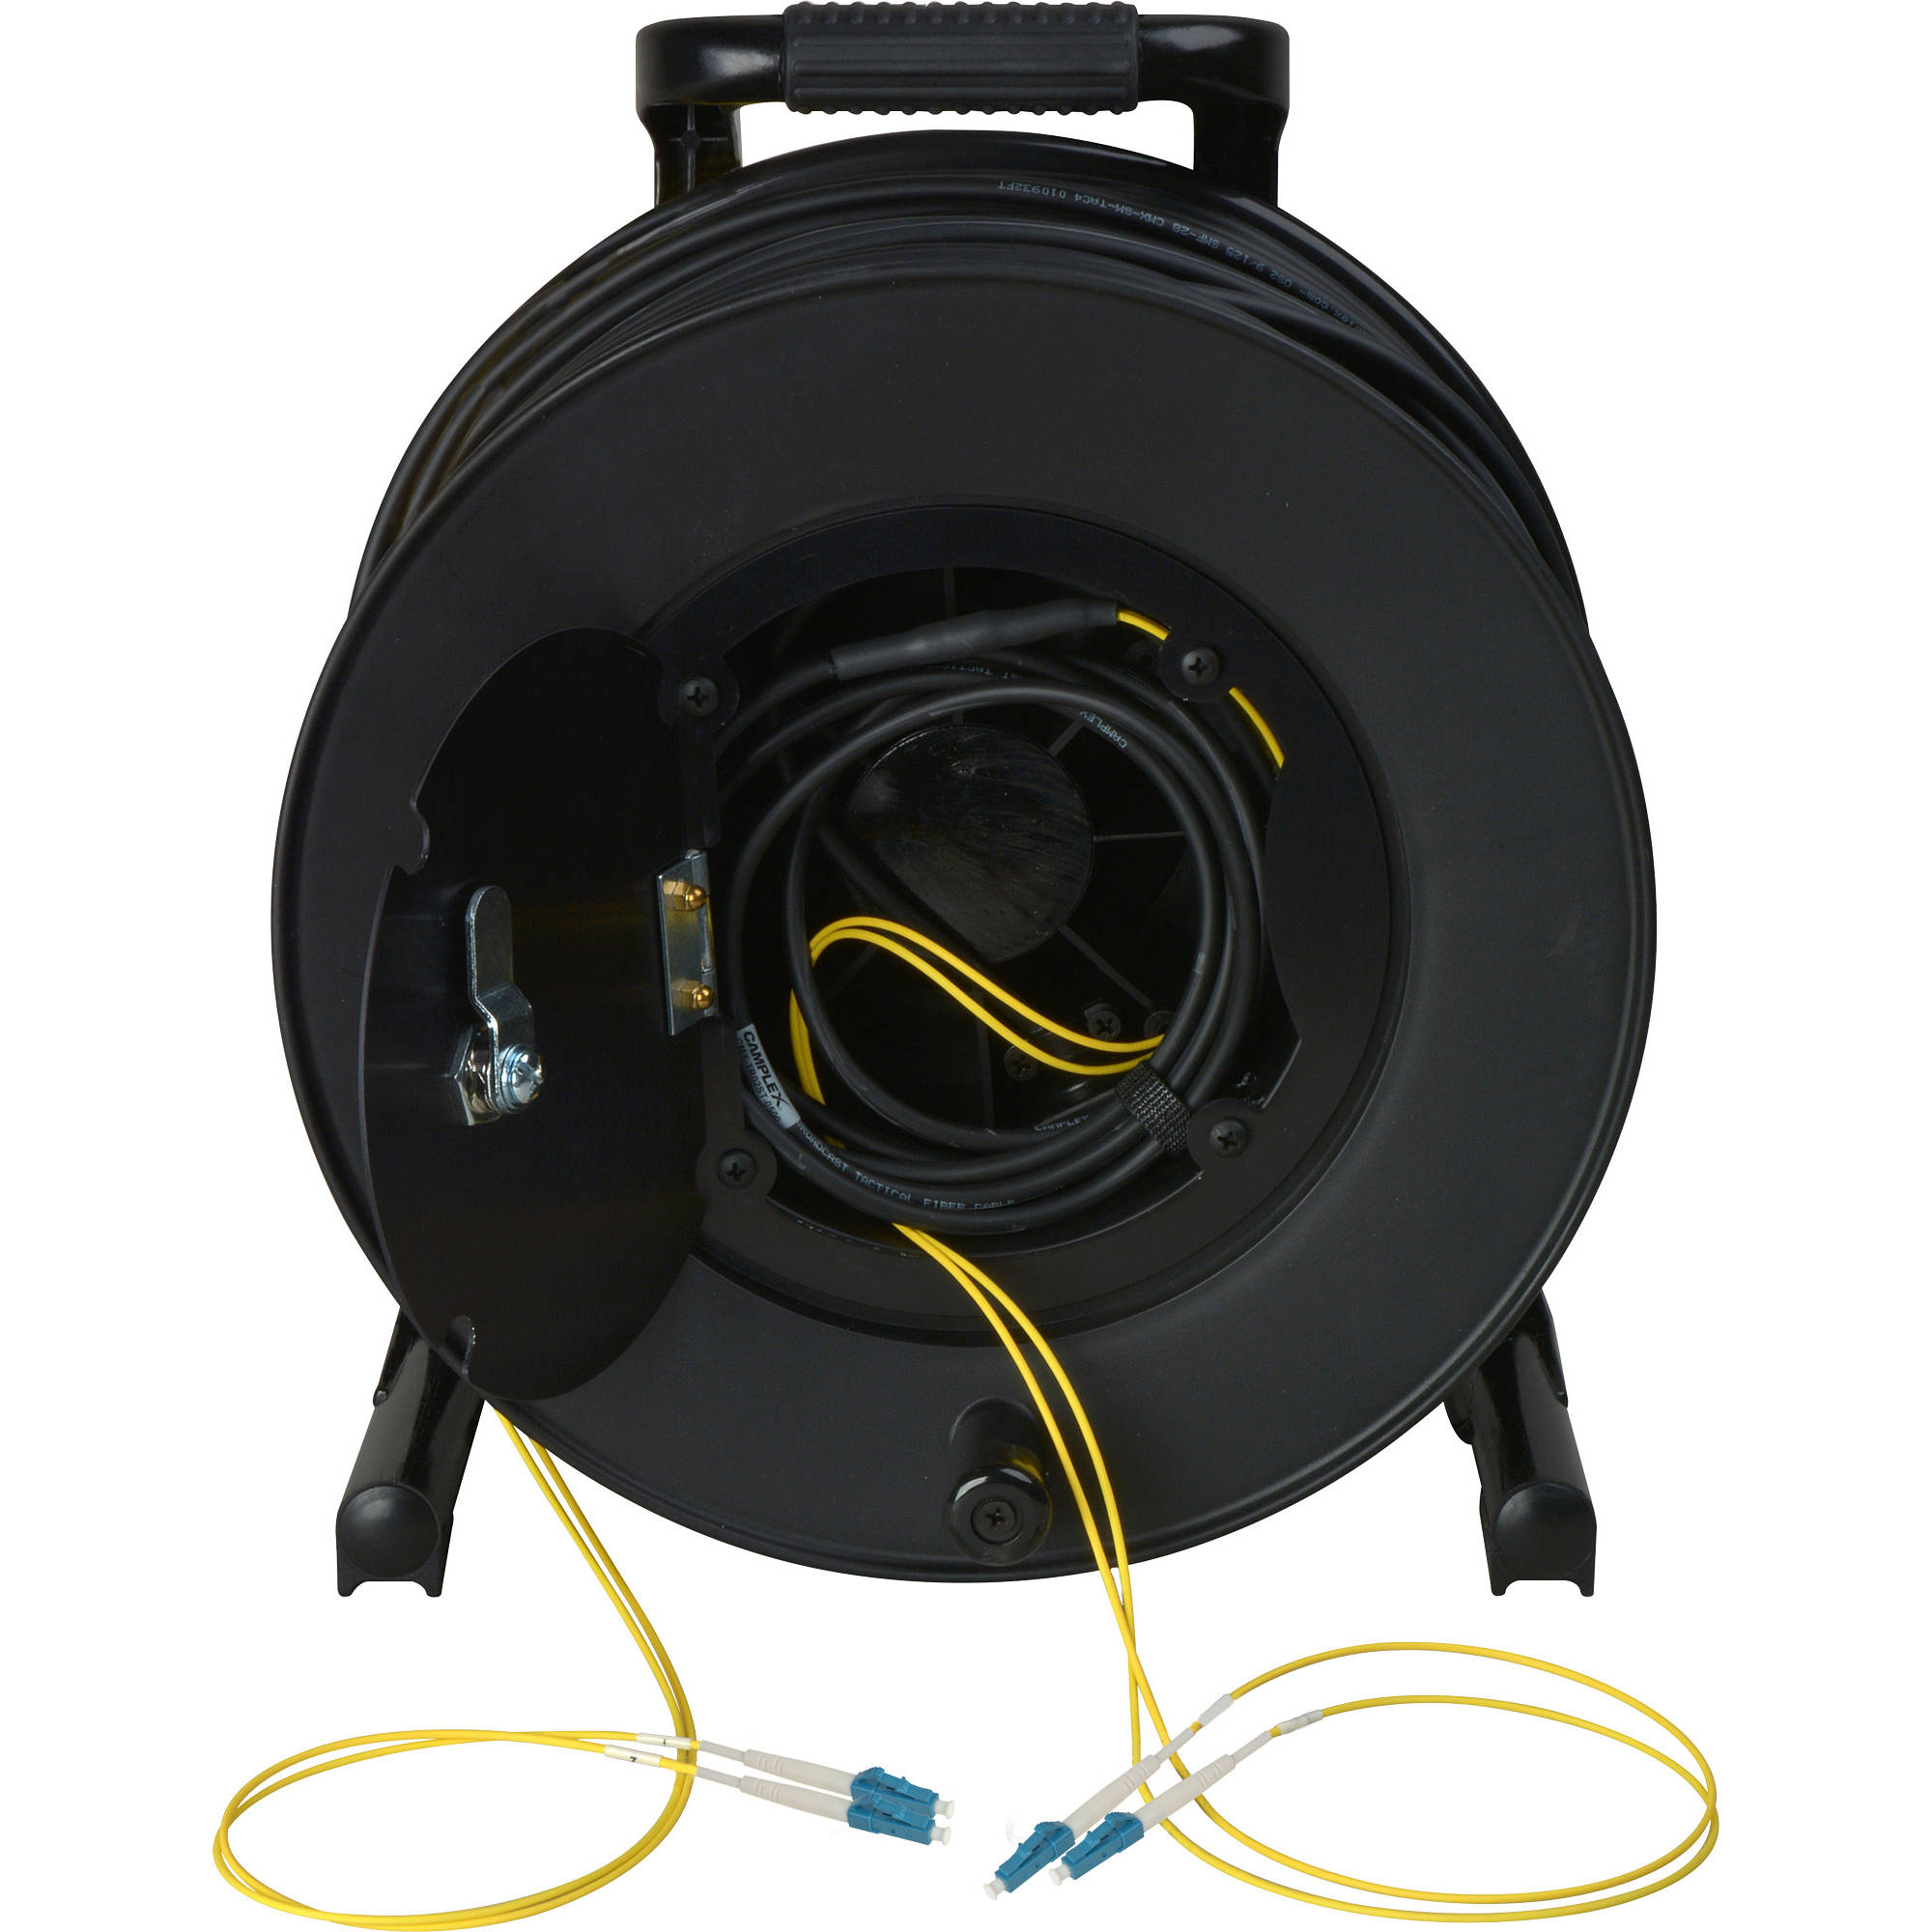 Camplex 2 Channel Fiber Optic Tactical Cable Cmx Tr02lc 0500 Bh Electrical Wiring Channels Reel With Lc Connectors 500